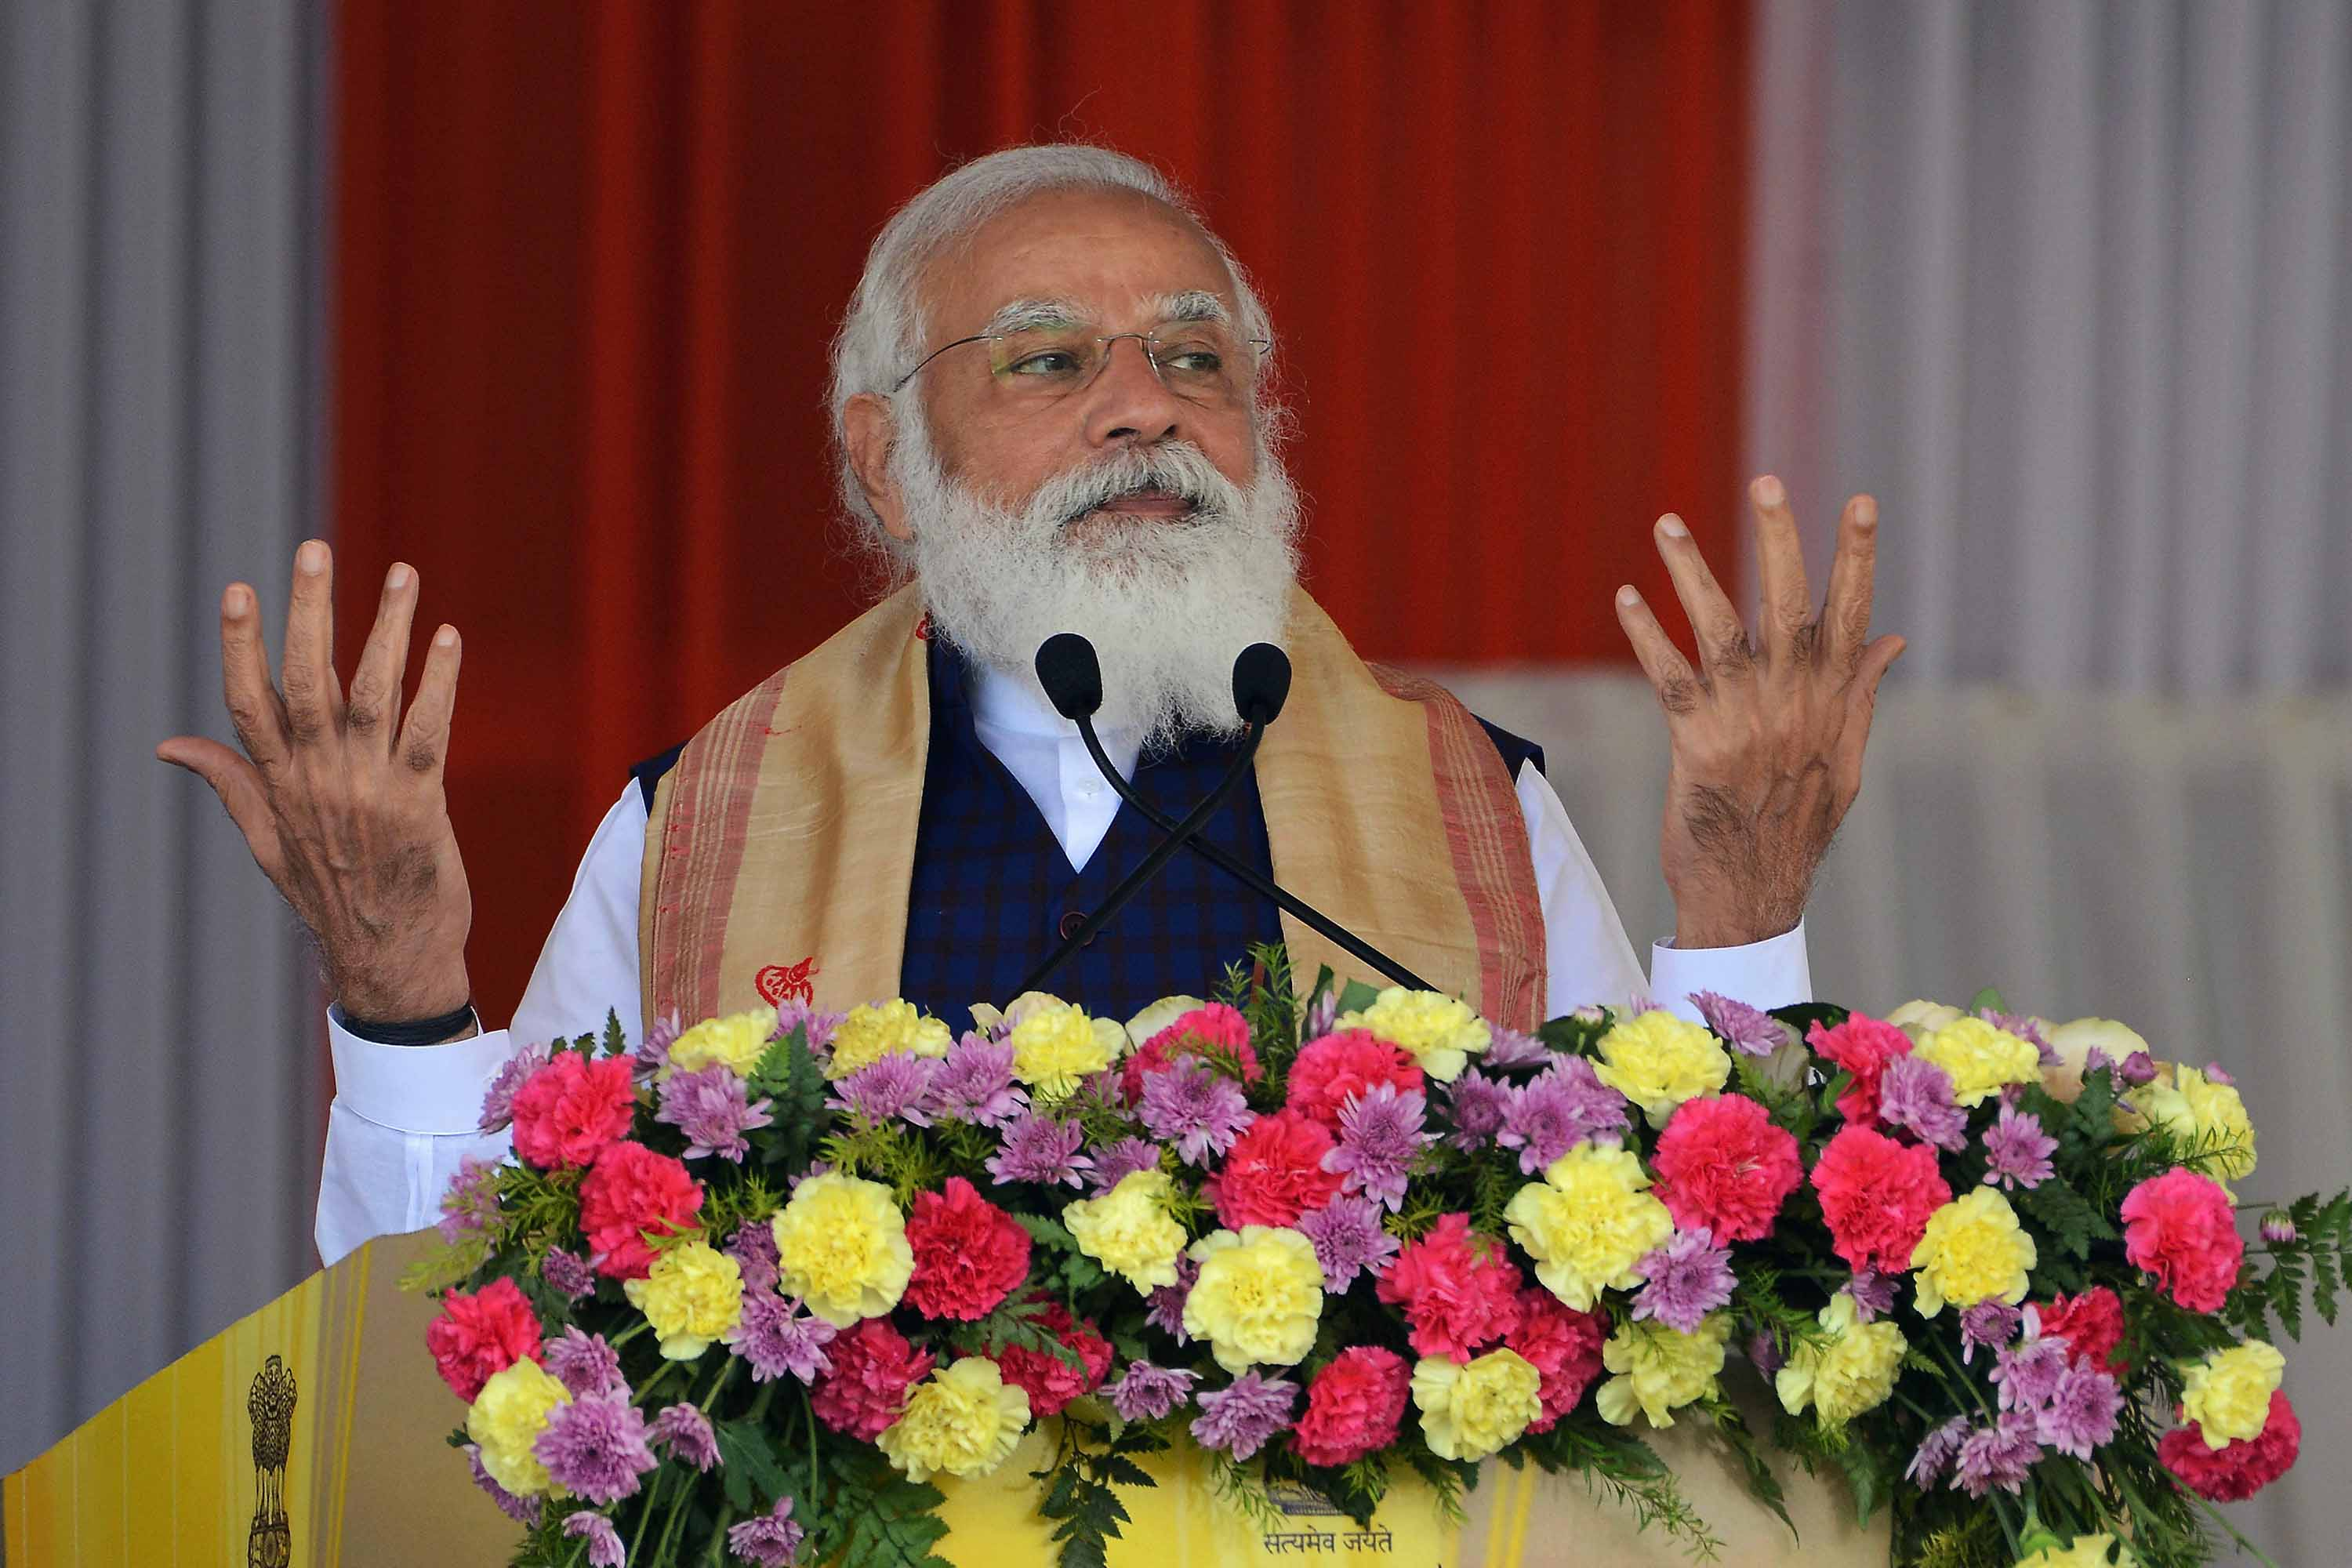 Indian Prime Minister Narendra Modi is pictured during a public meeting in Sivasagar district of India's Assam state, on January 23.